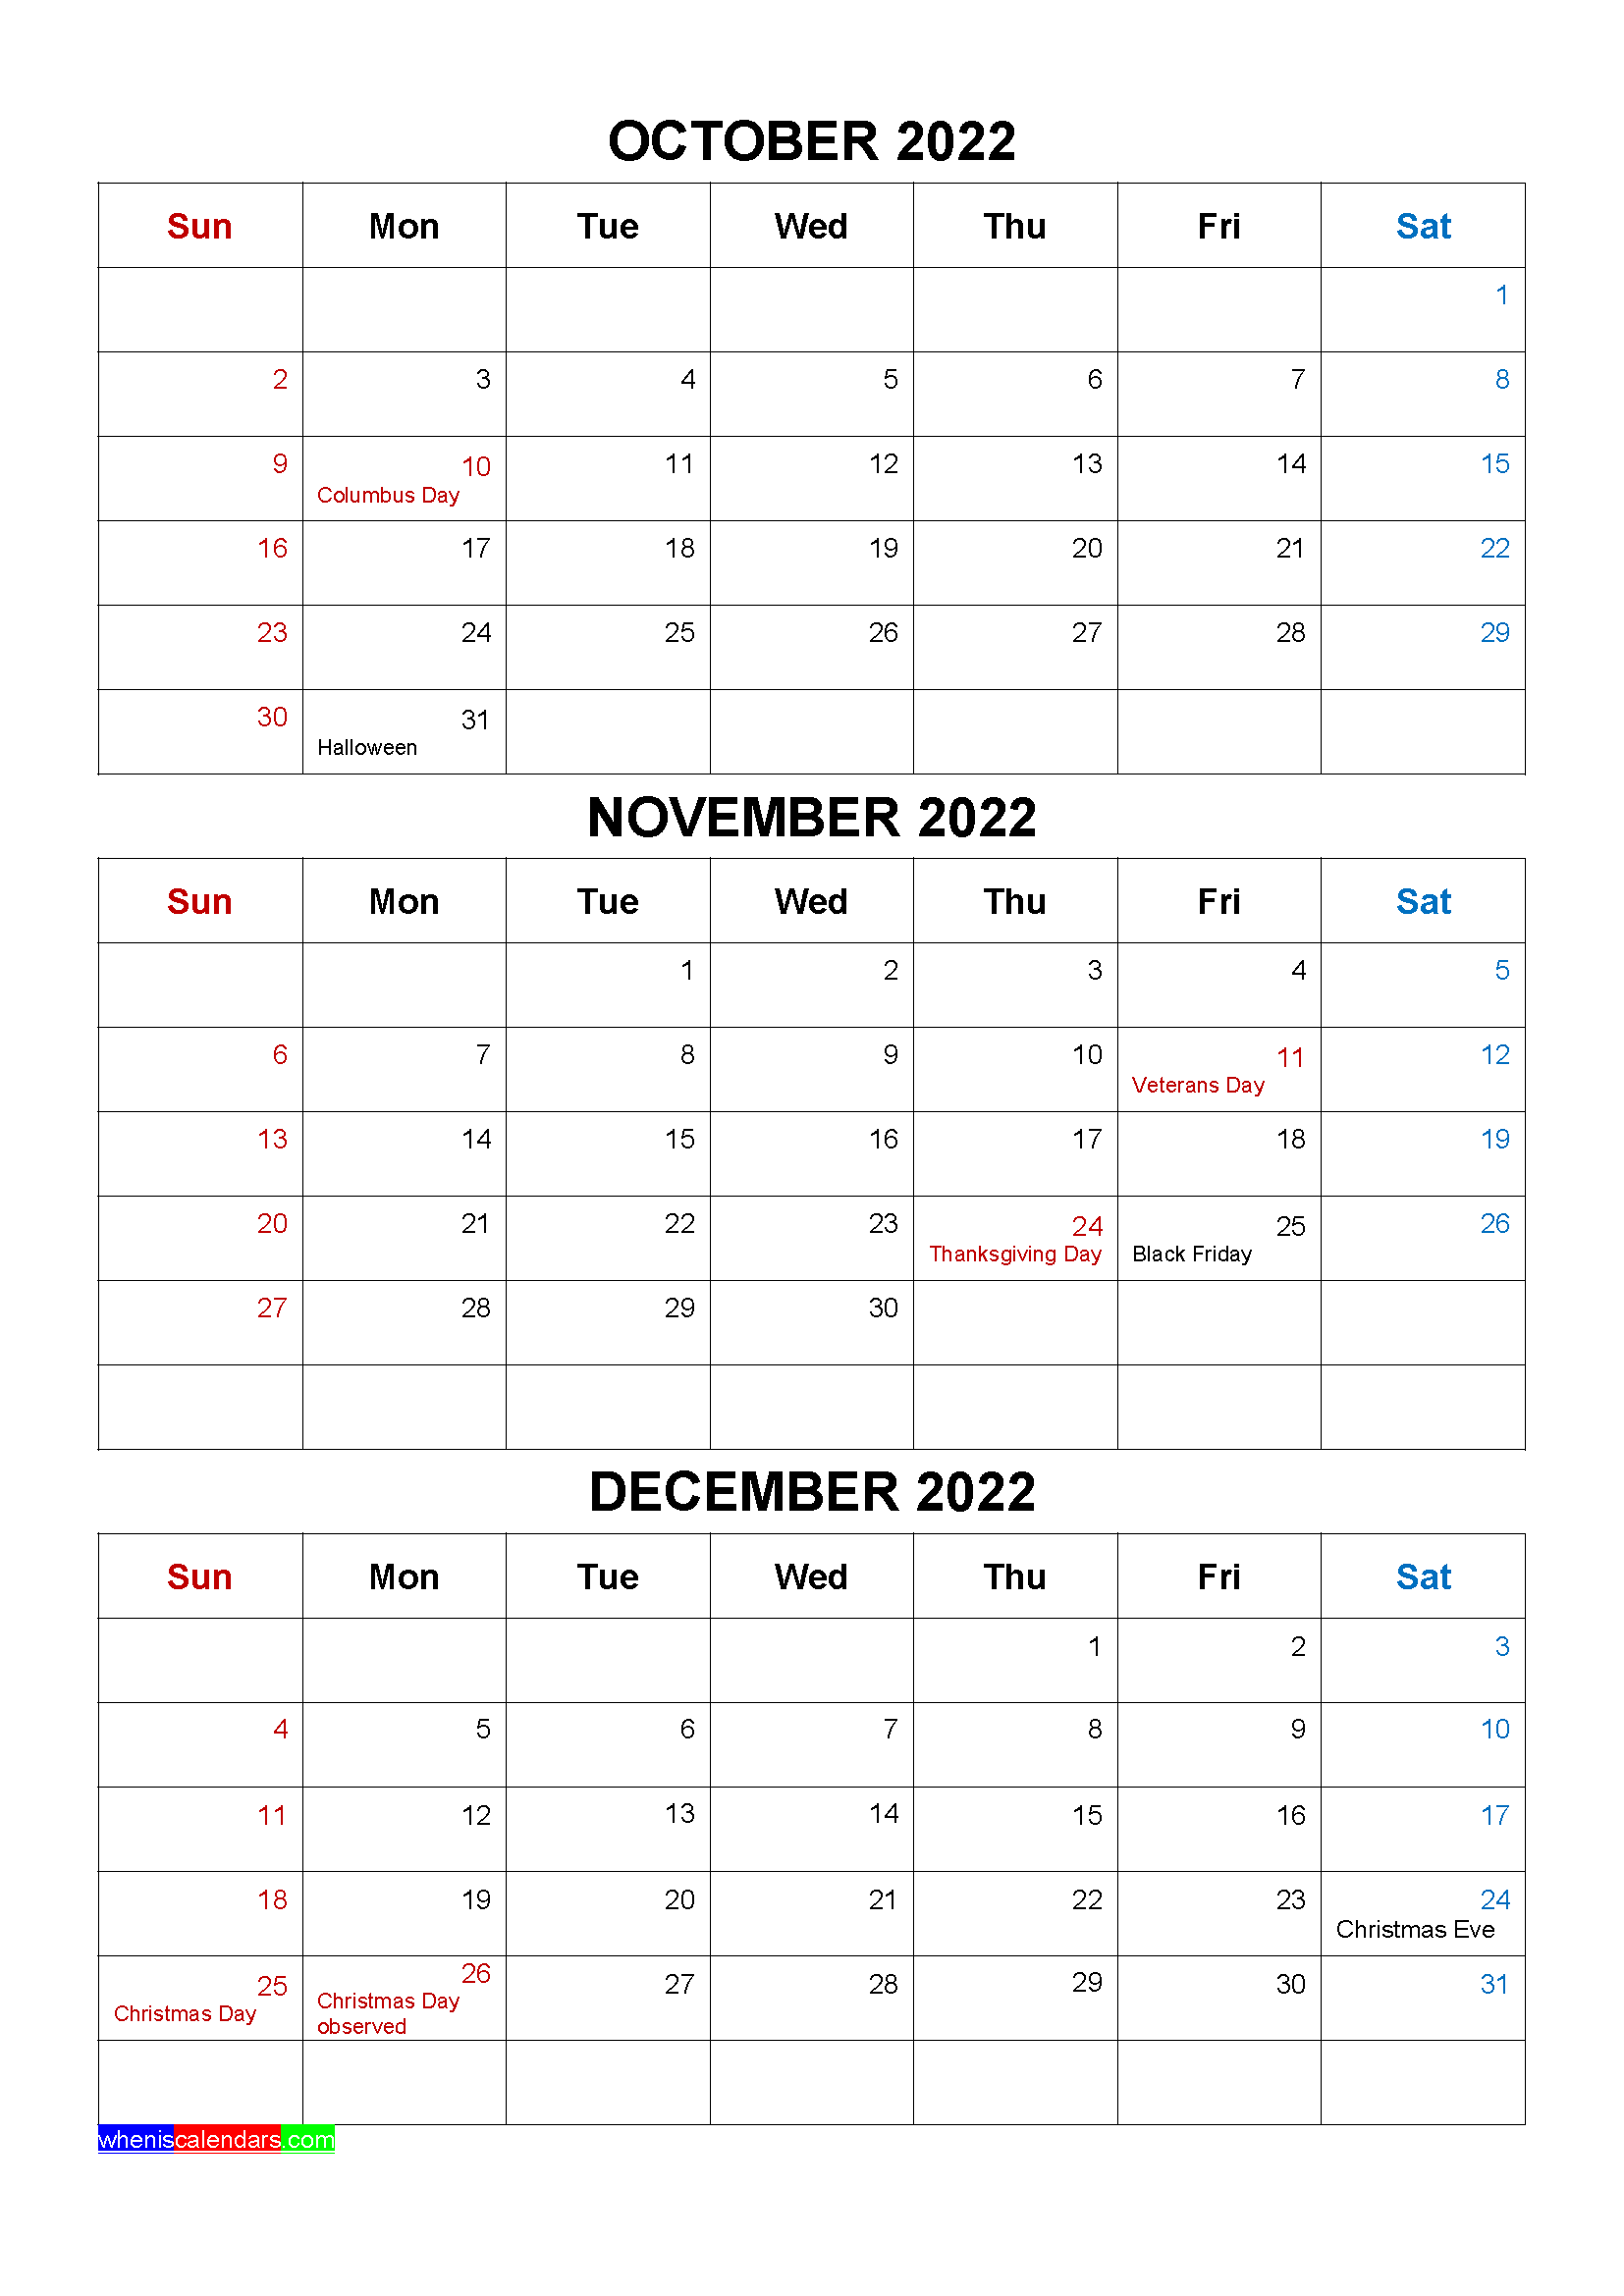 Free October November December 2022 Calendar with Holidays